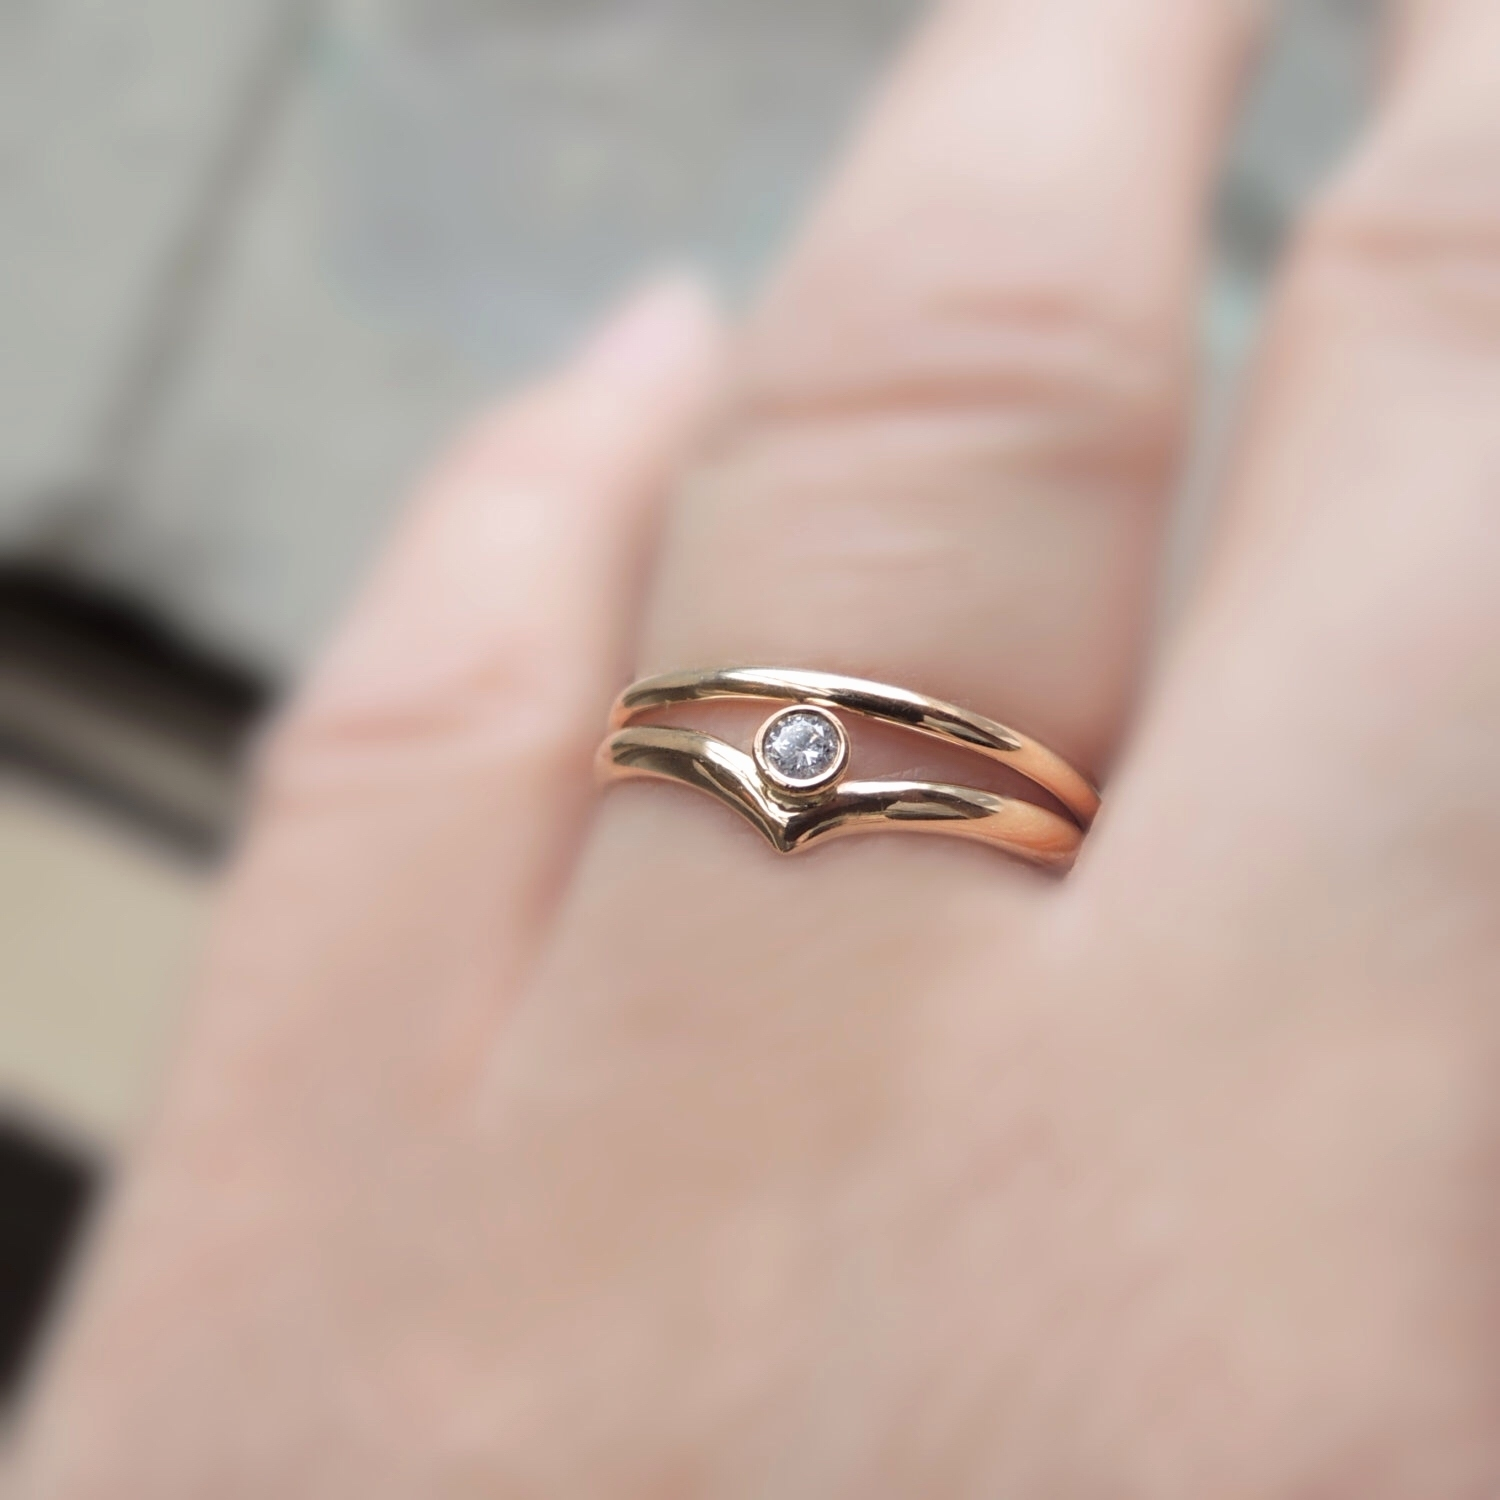 15 Best Ideas of Chevron Wedding Rings